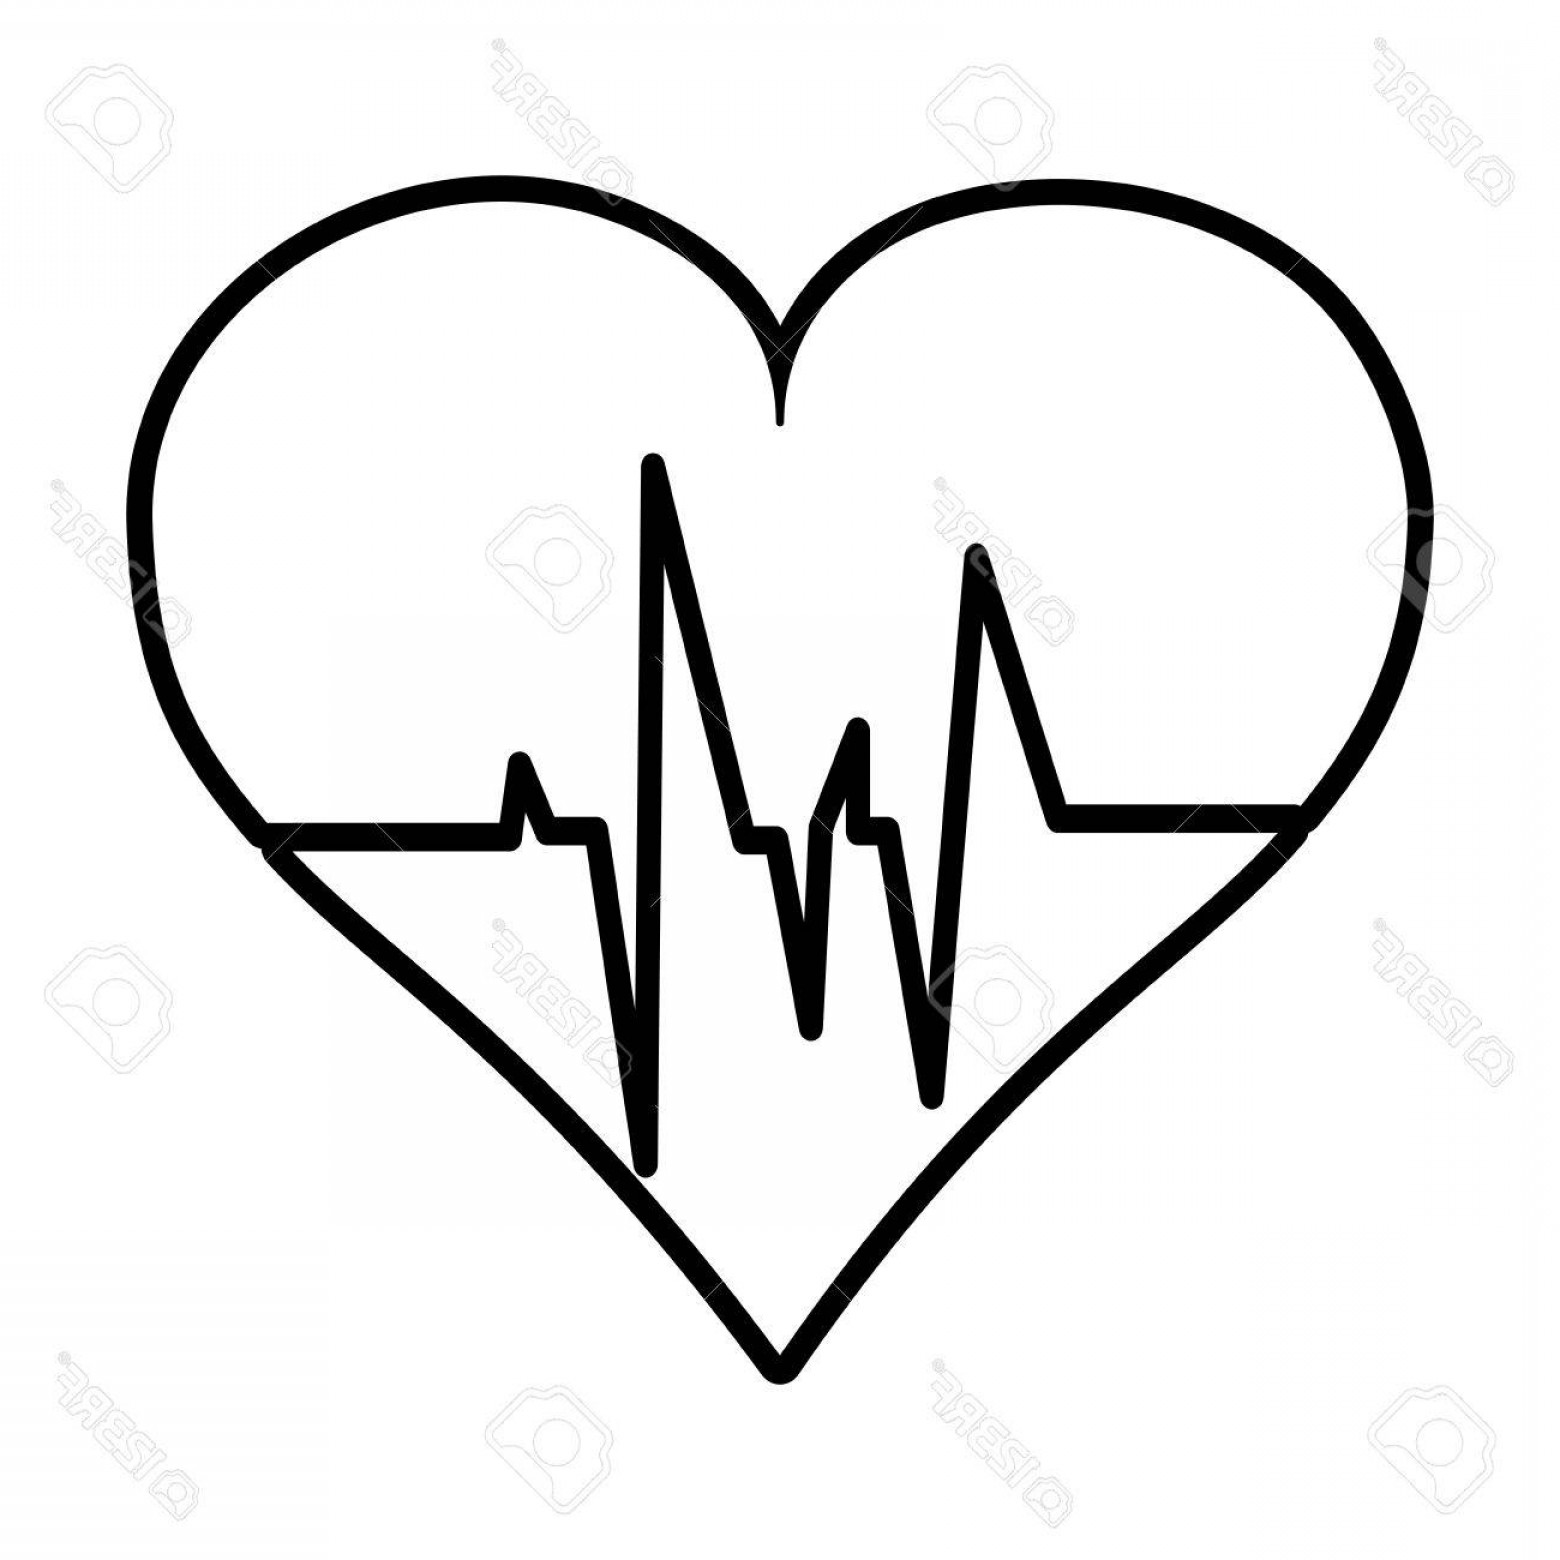 Heart With EKG Line Vector: Photostock Vector Flat Line Uncolored Heart Ecg Over White Background Vector Illustration